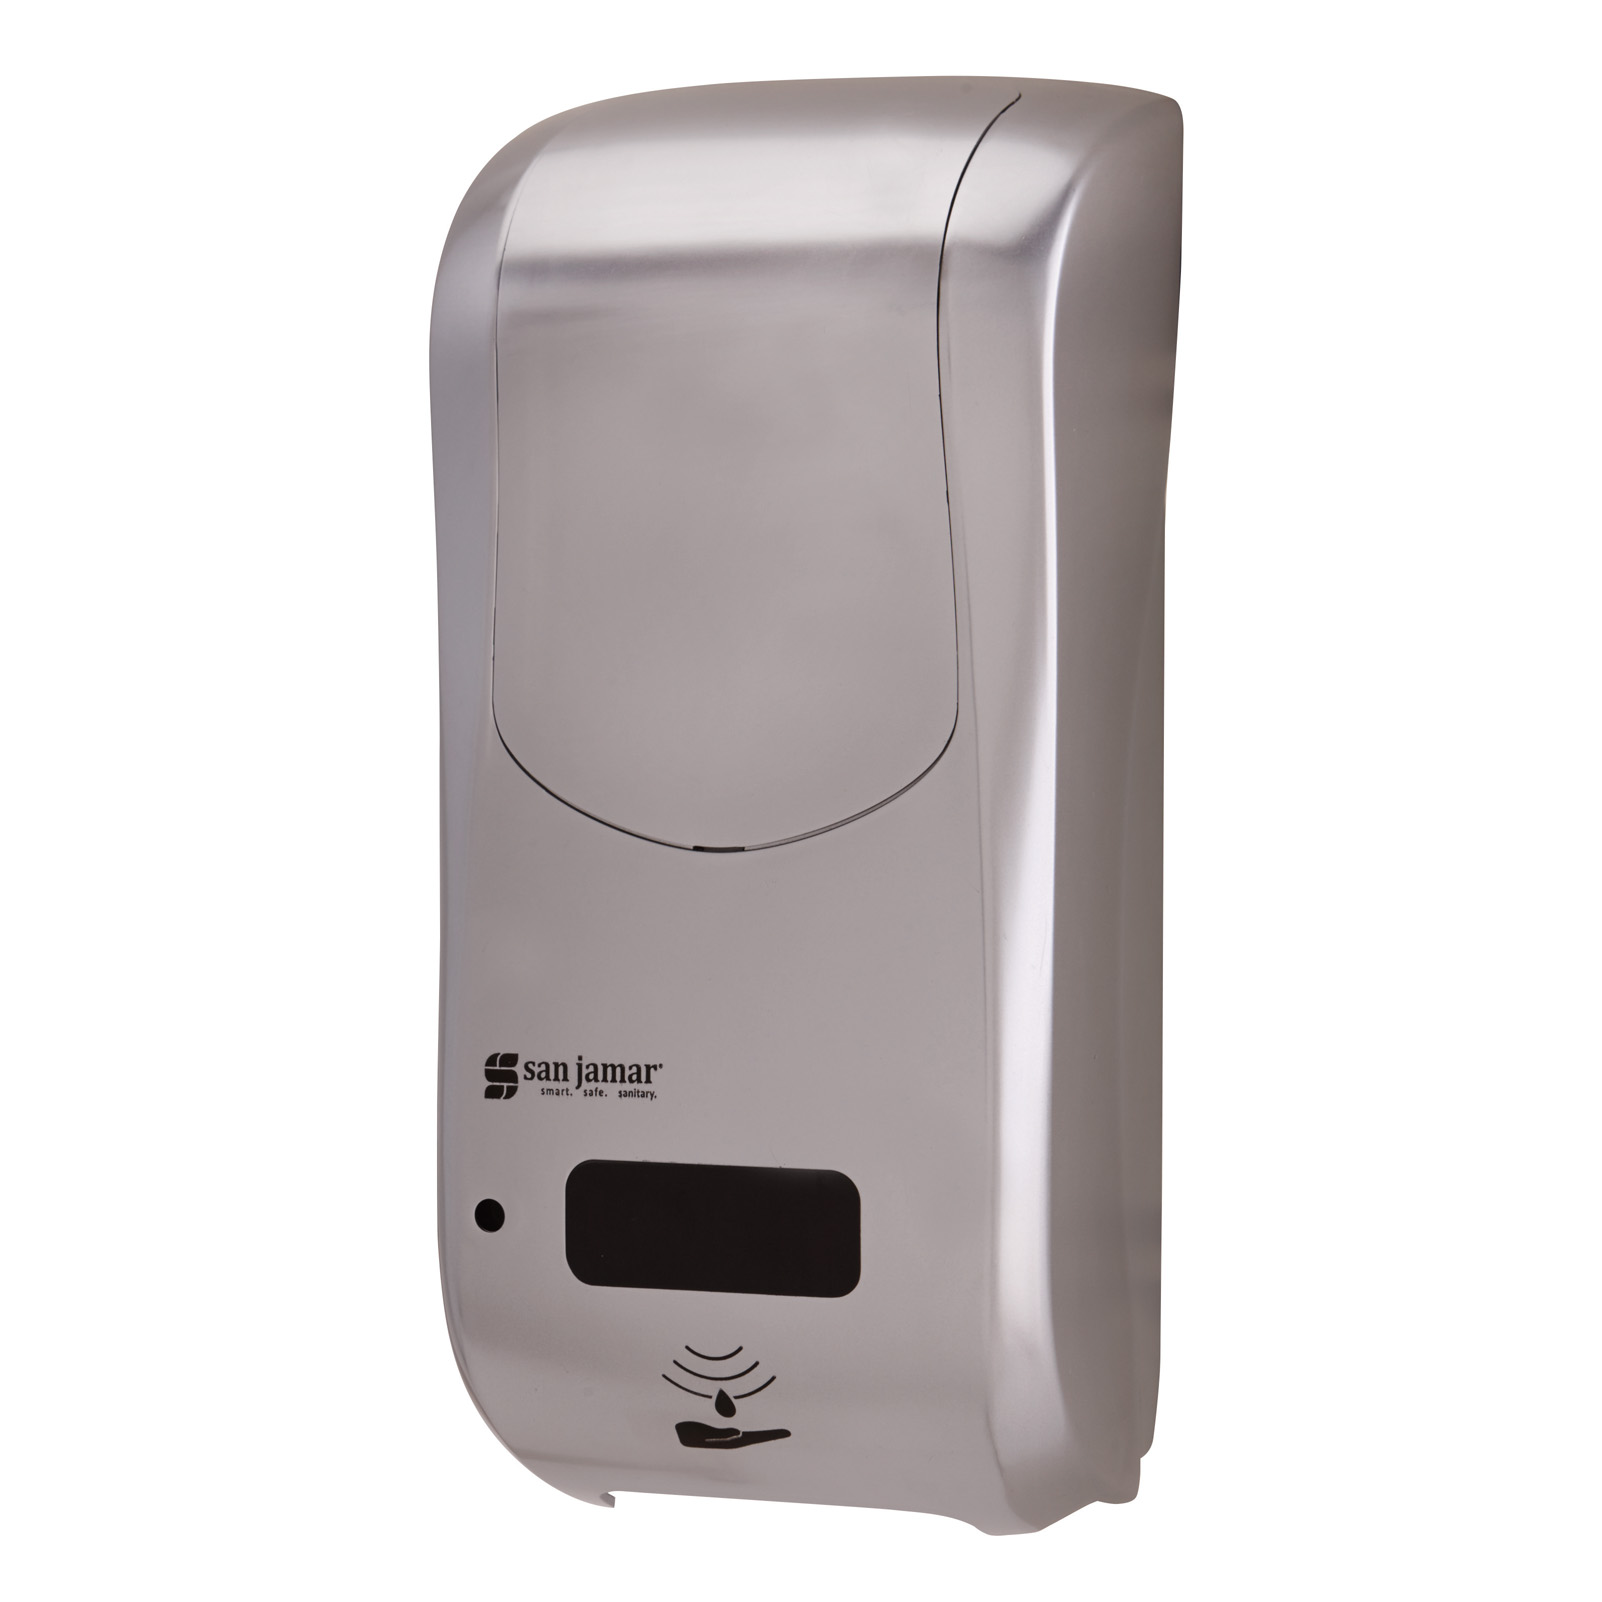 San Jamar SHF970SS hand soap / sanitizer dispenser